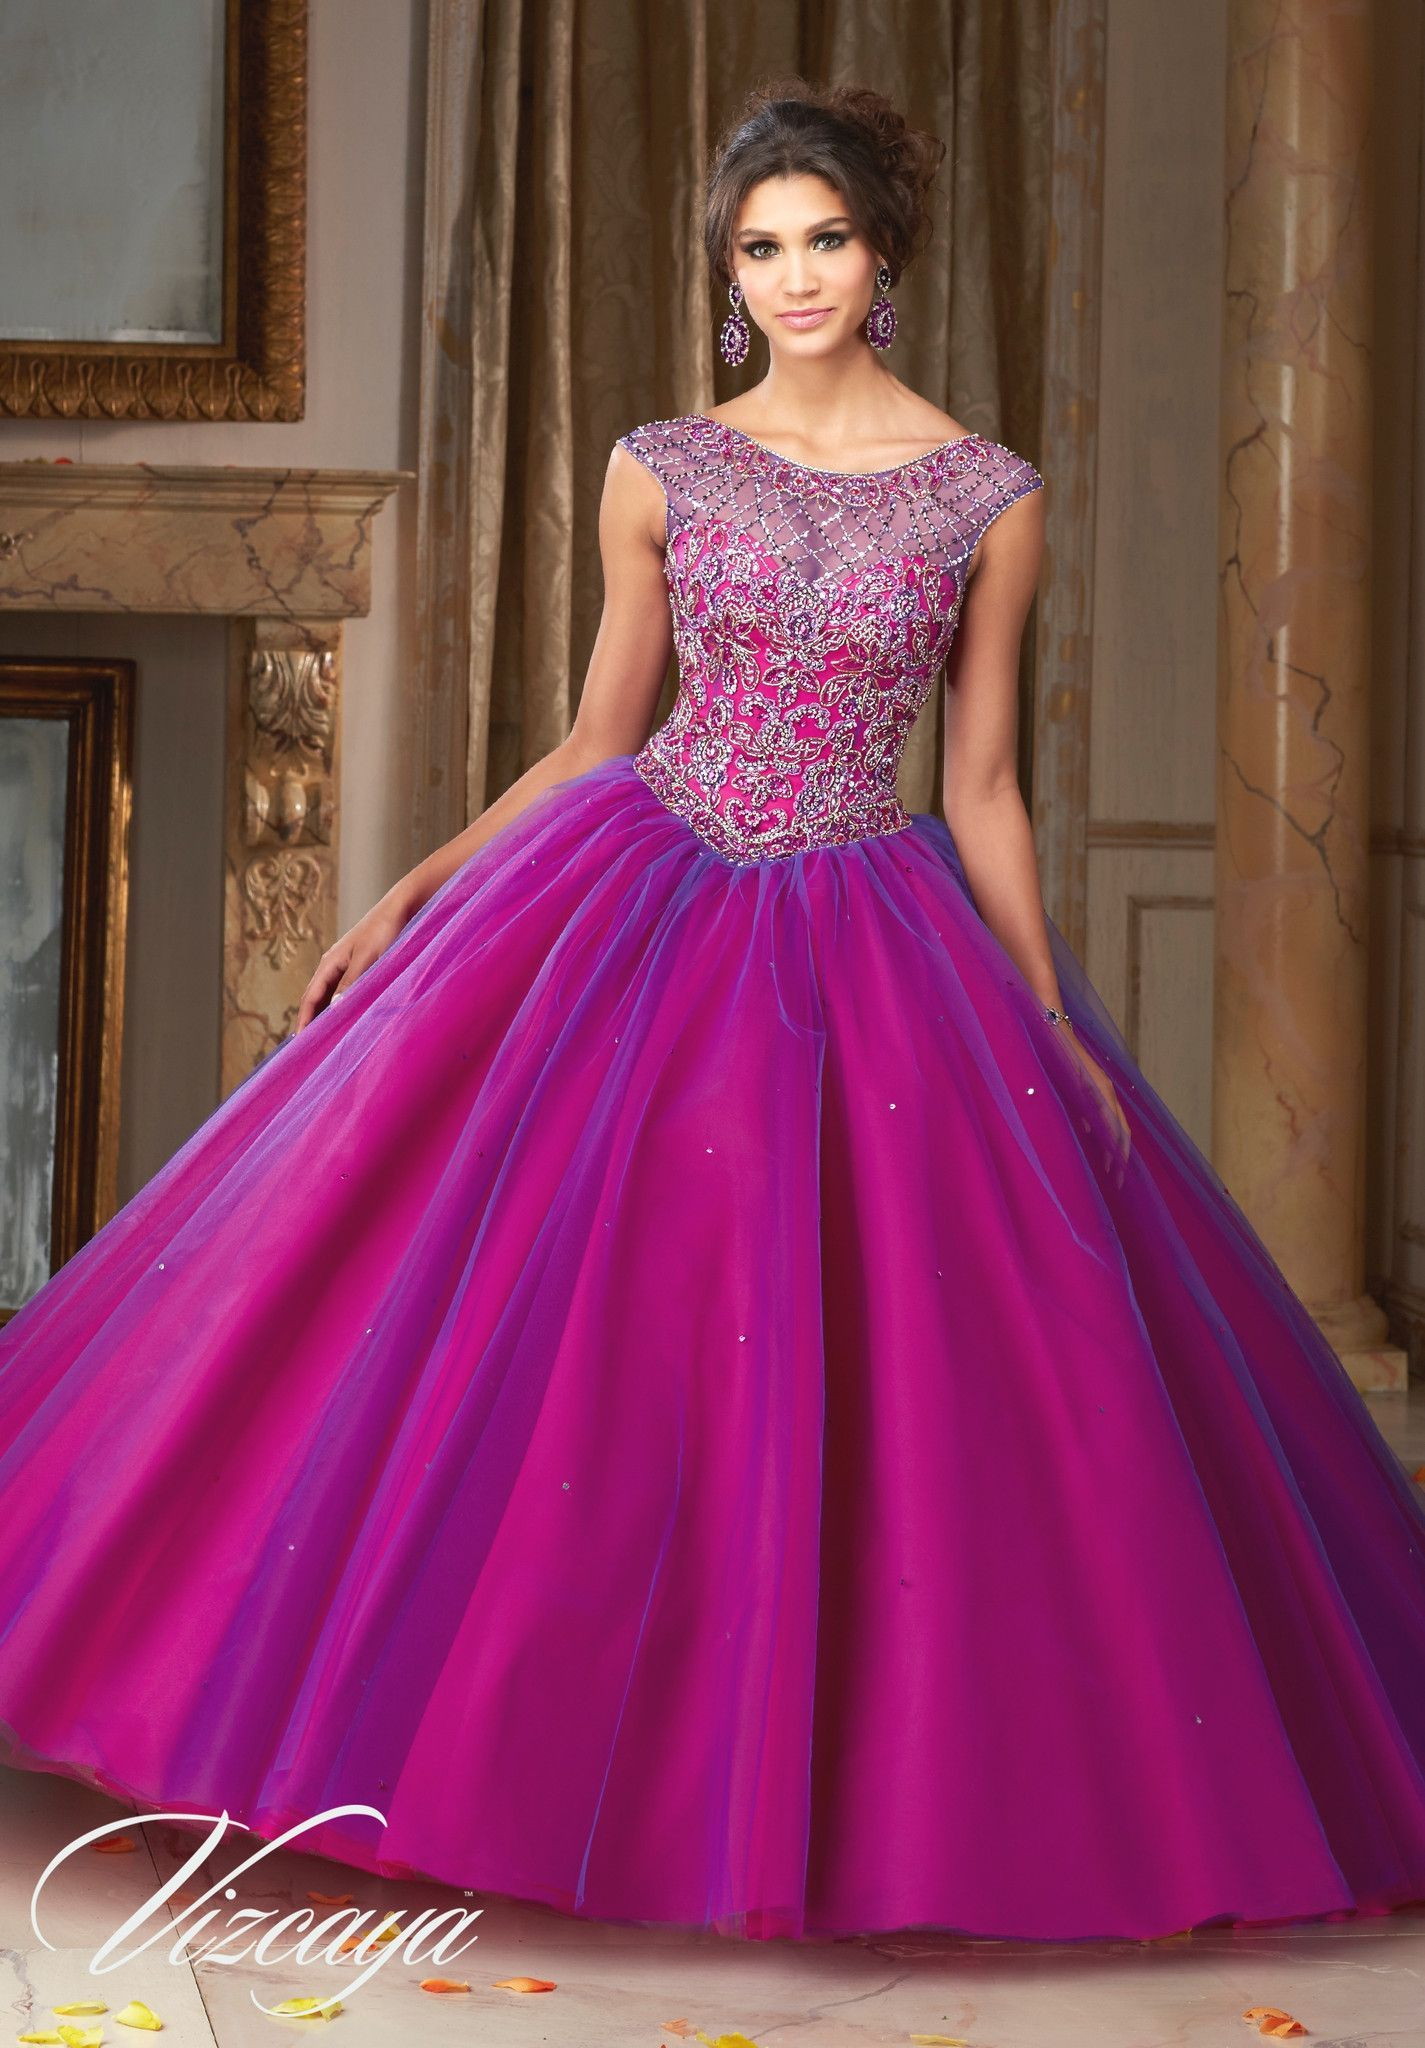 Mori Lee Quinceanera Dress 89104 | 15 años, Vestiditos y Vestido de ...